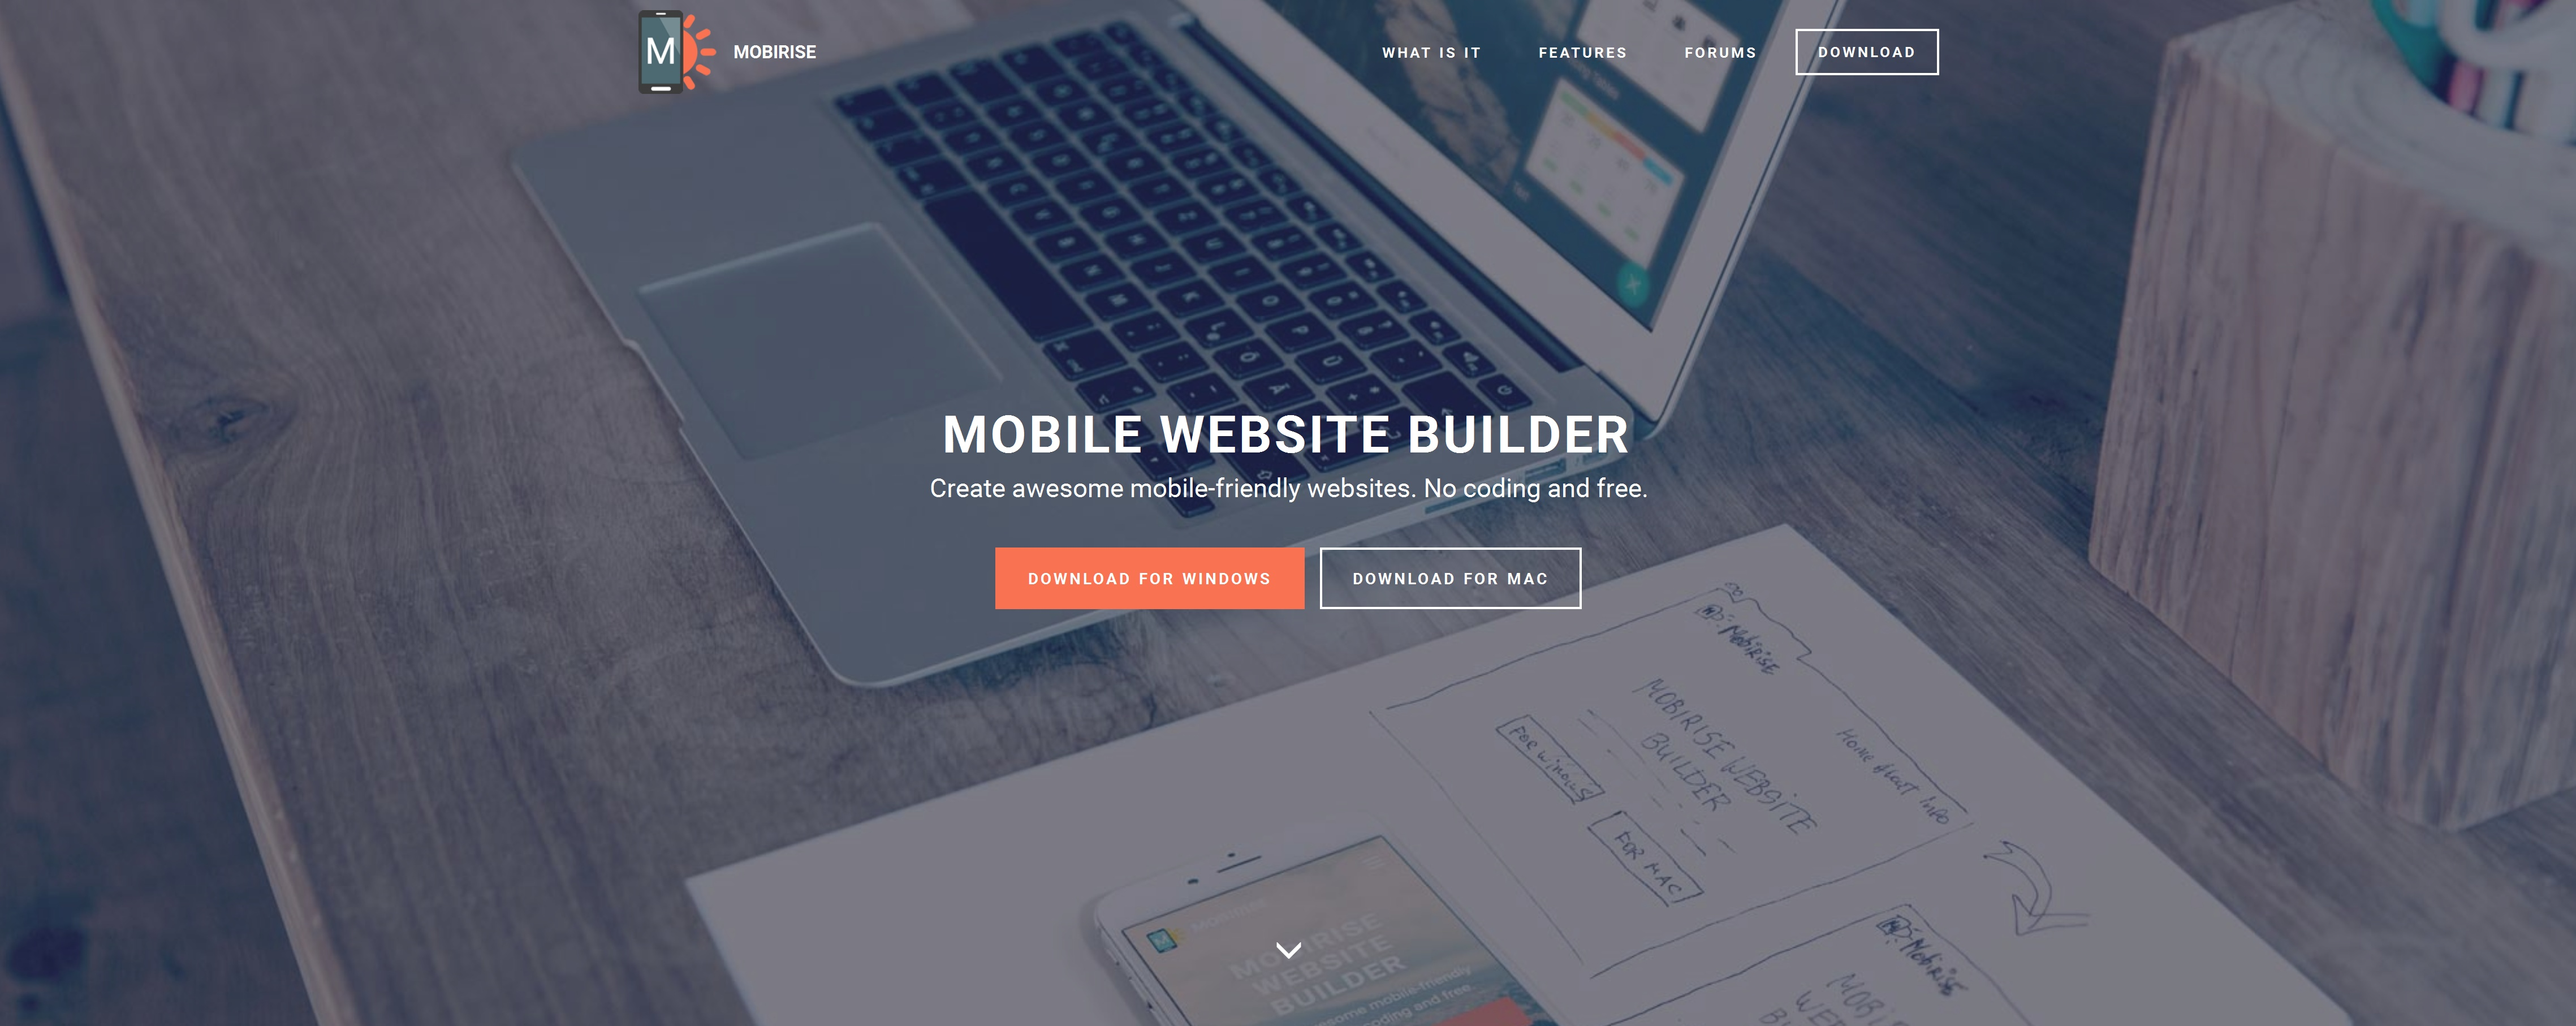 Drag and Drop Mobile Website Generator